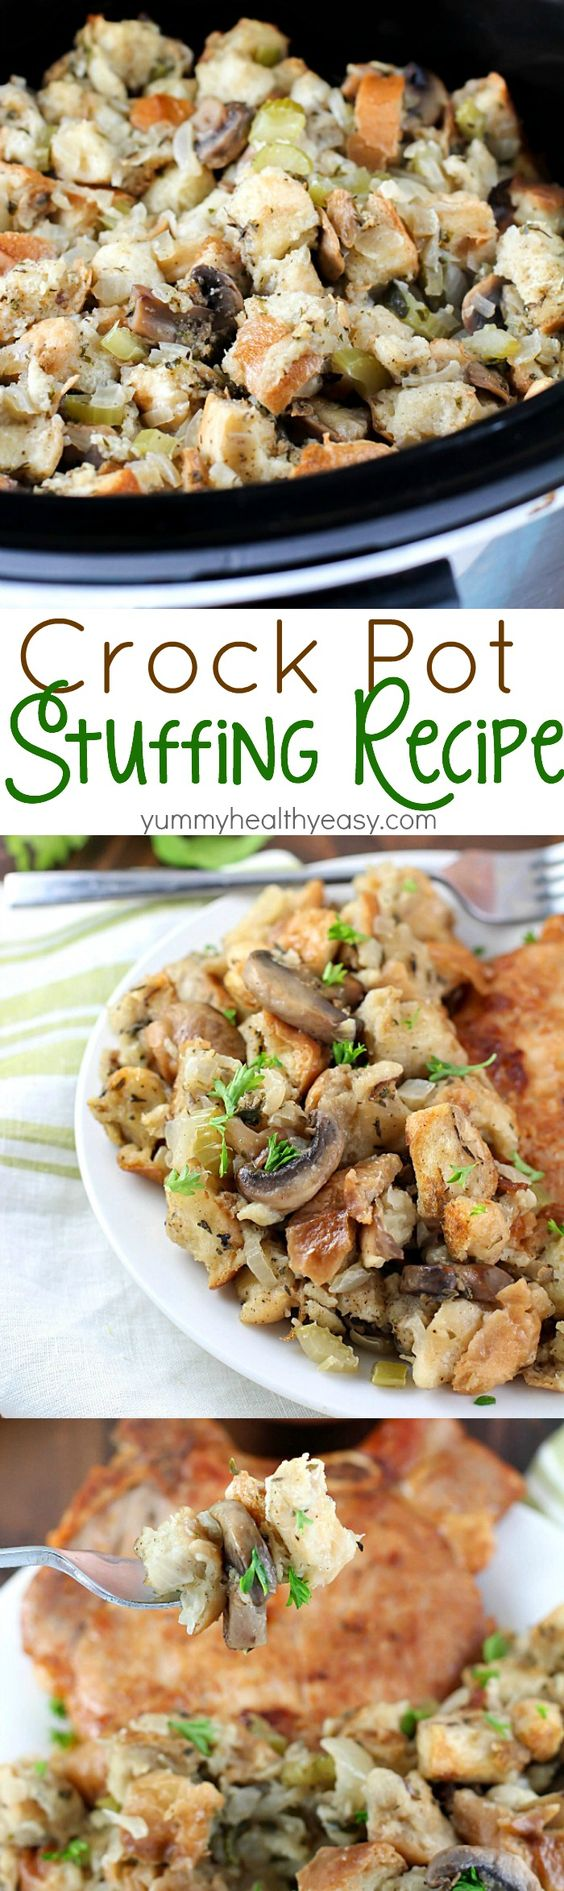 So many great spices & flavors going on in this Crock Pot Stuffing Recipe! It beats the pants off of those other blah stuffing recipes. Plus it's cooked in the slow cooker, so you can put it in hours before dinnertime and not even think about it until you eat! Perfect for Thanksgiving or any other day of the year!